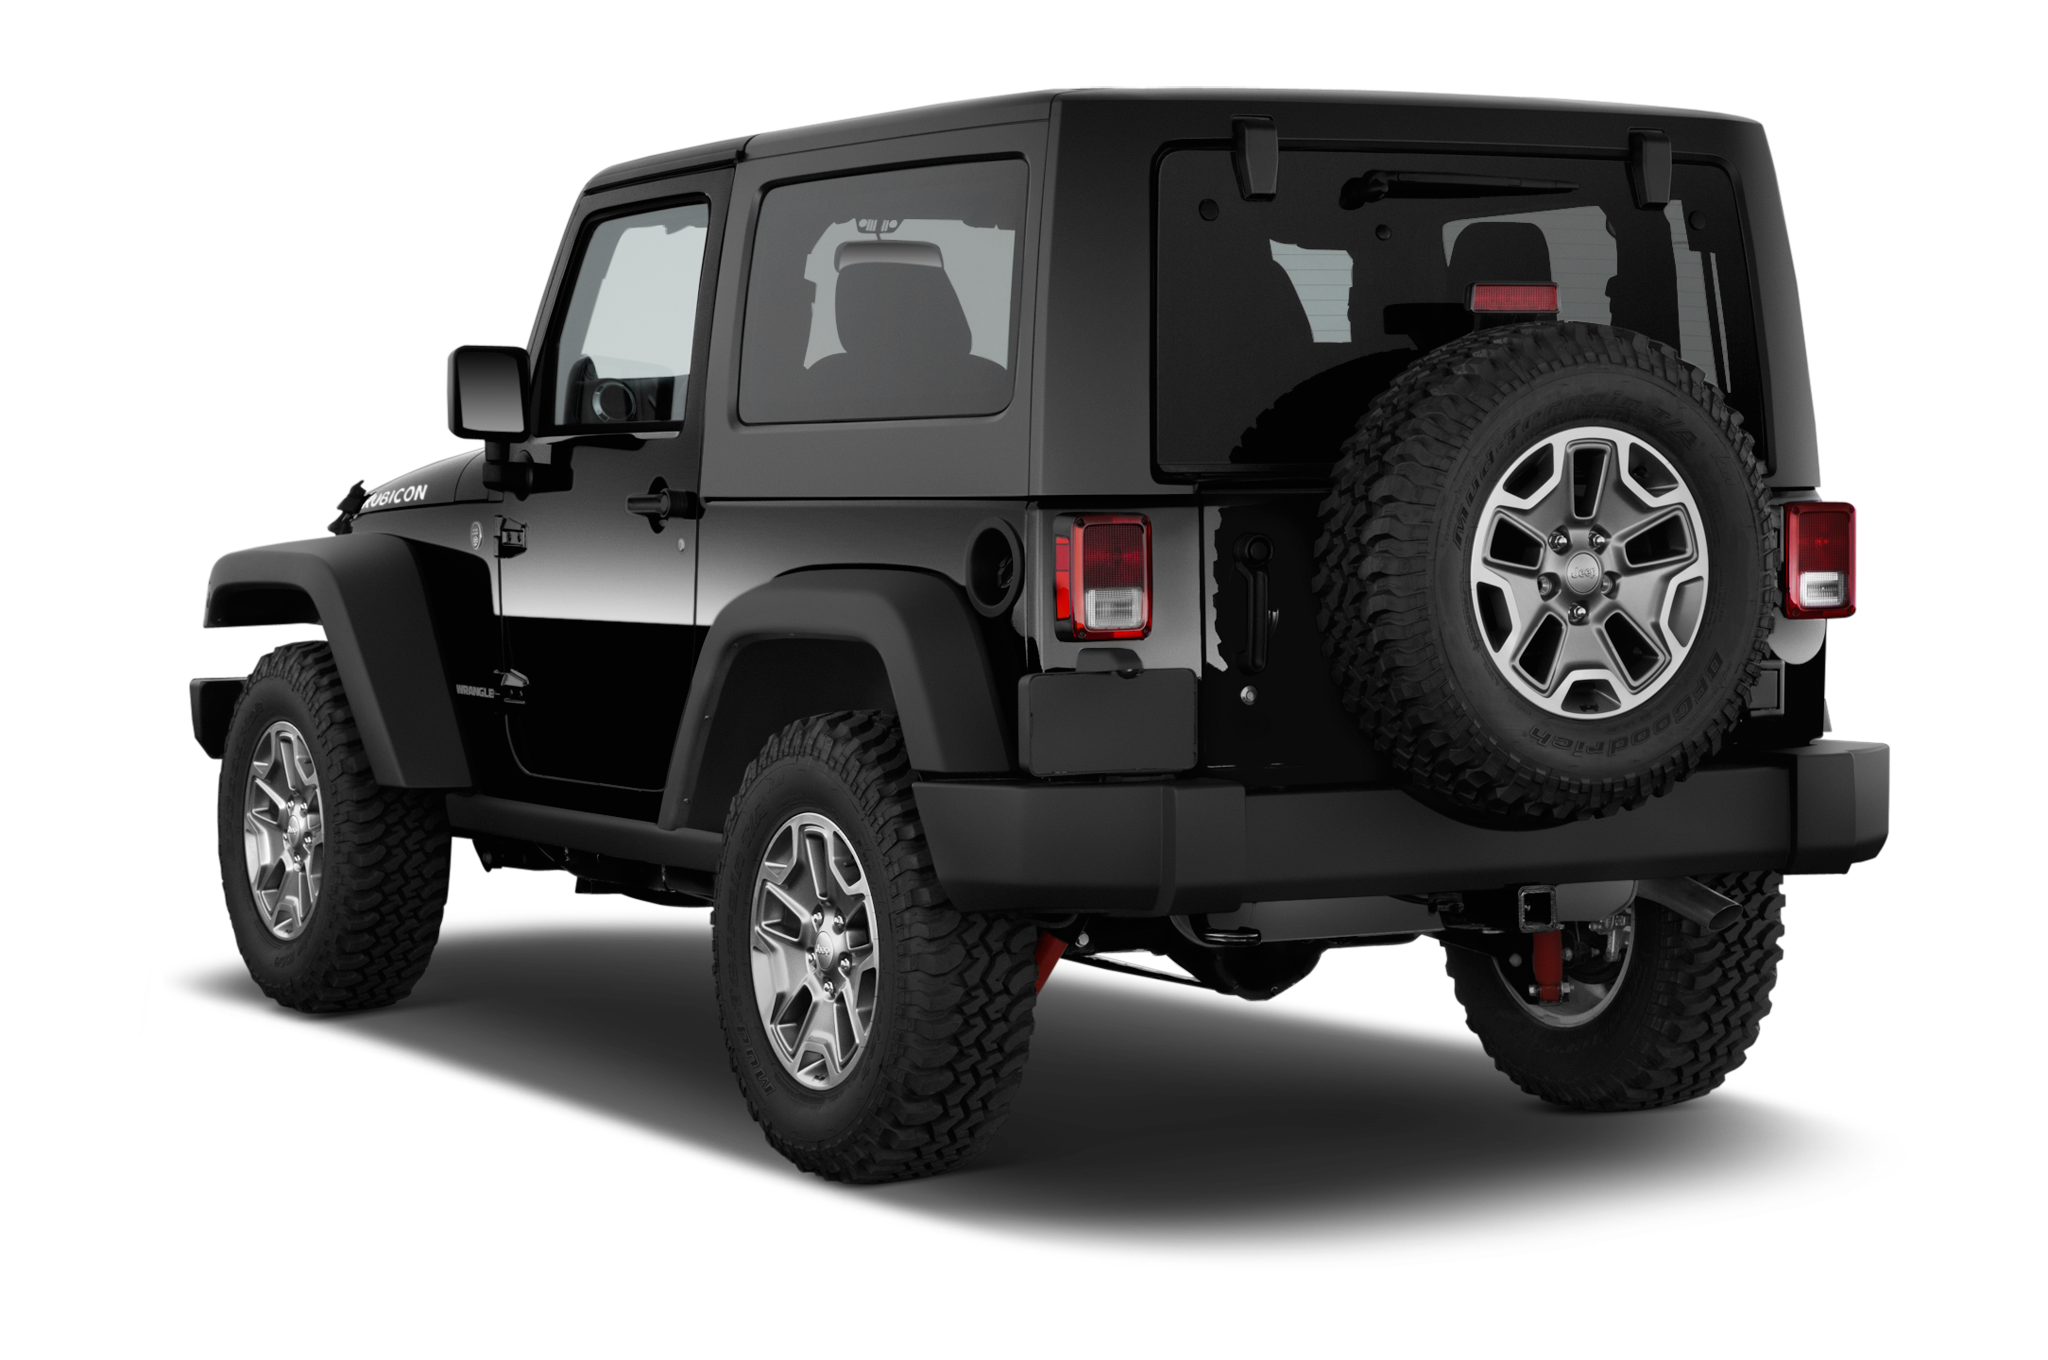 rubicon sale vehicles wrangler img jeep for unlimited